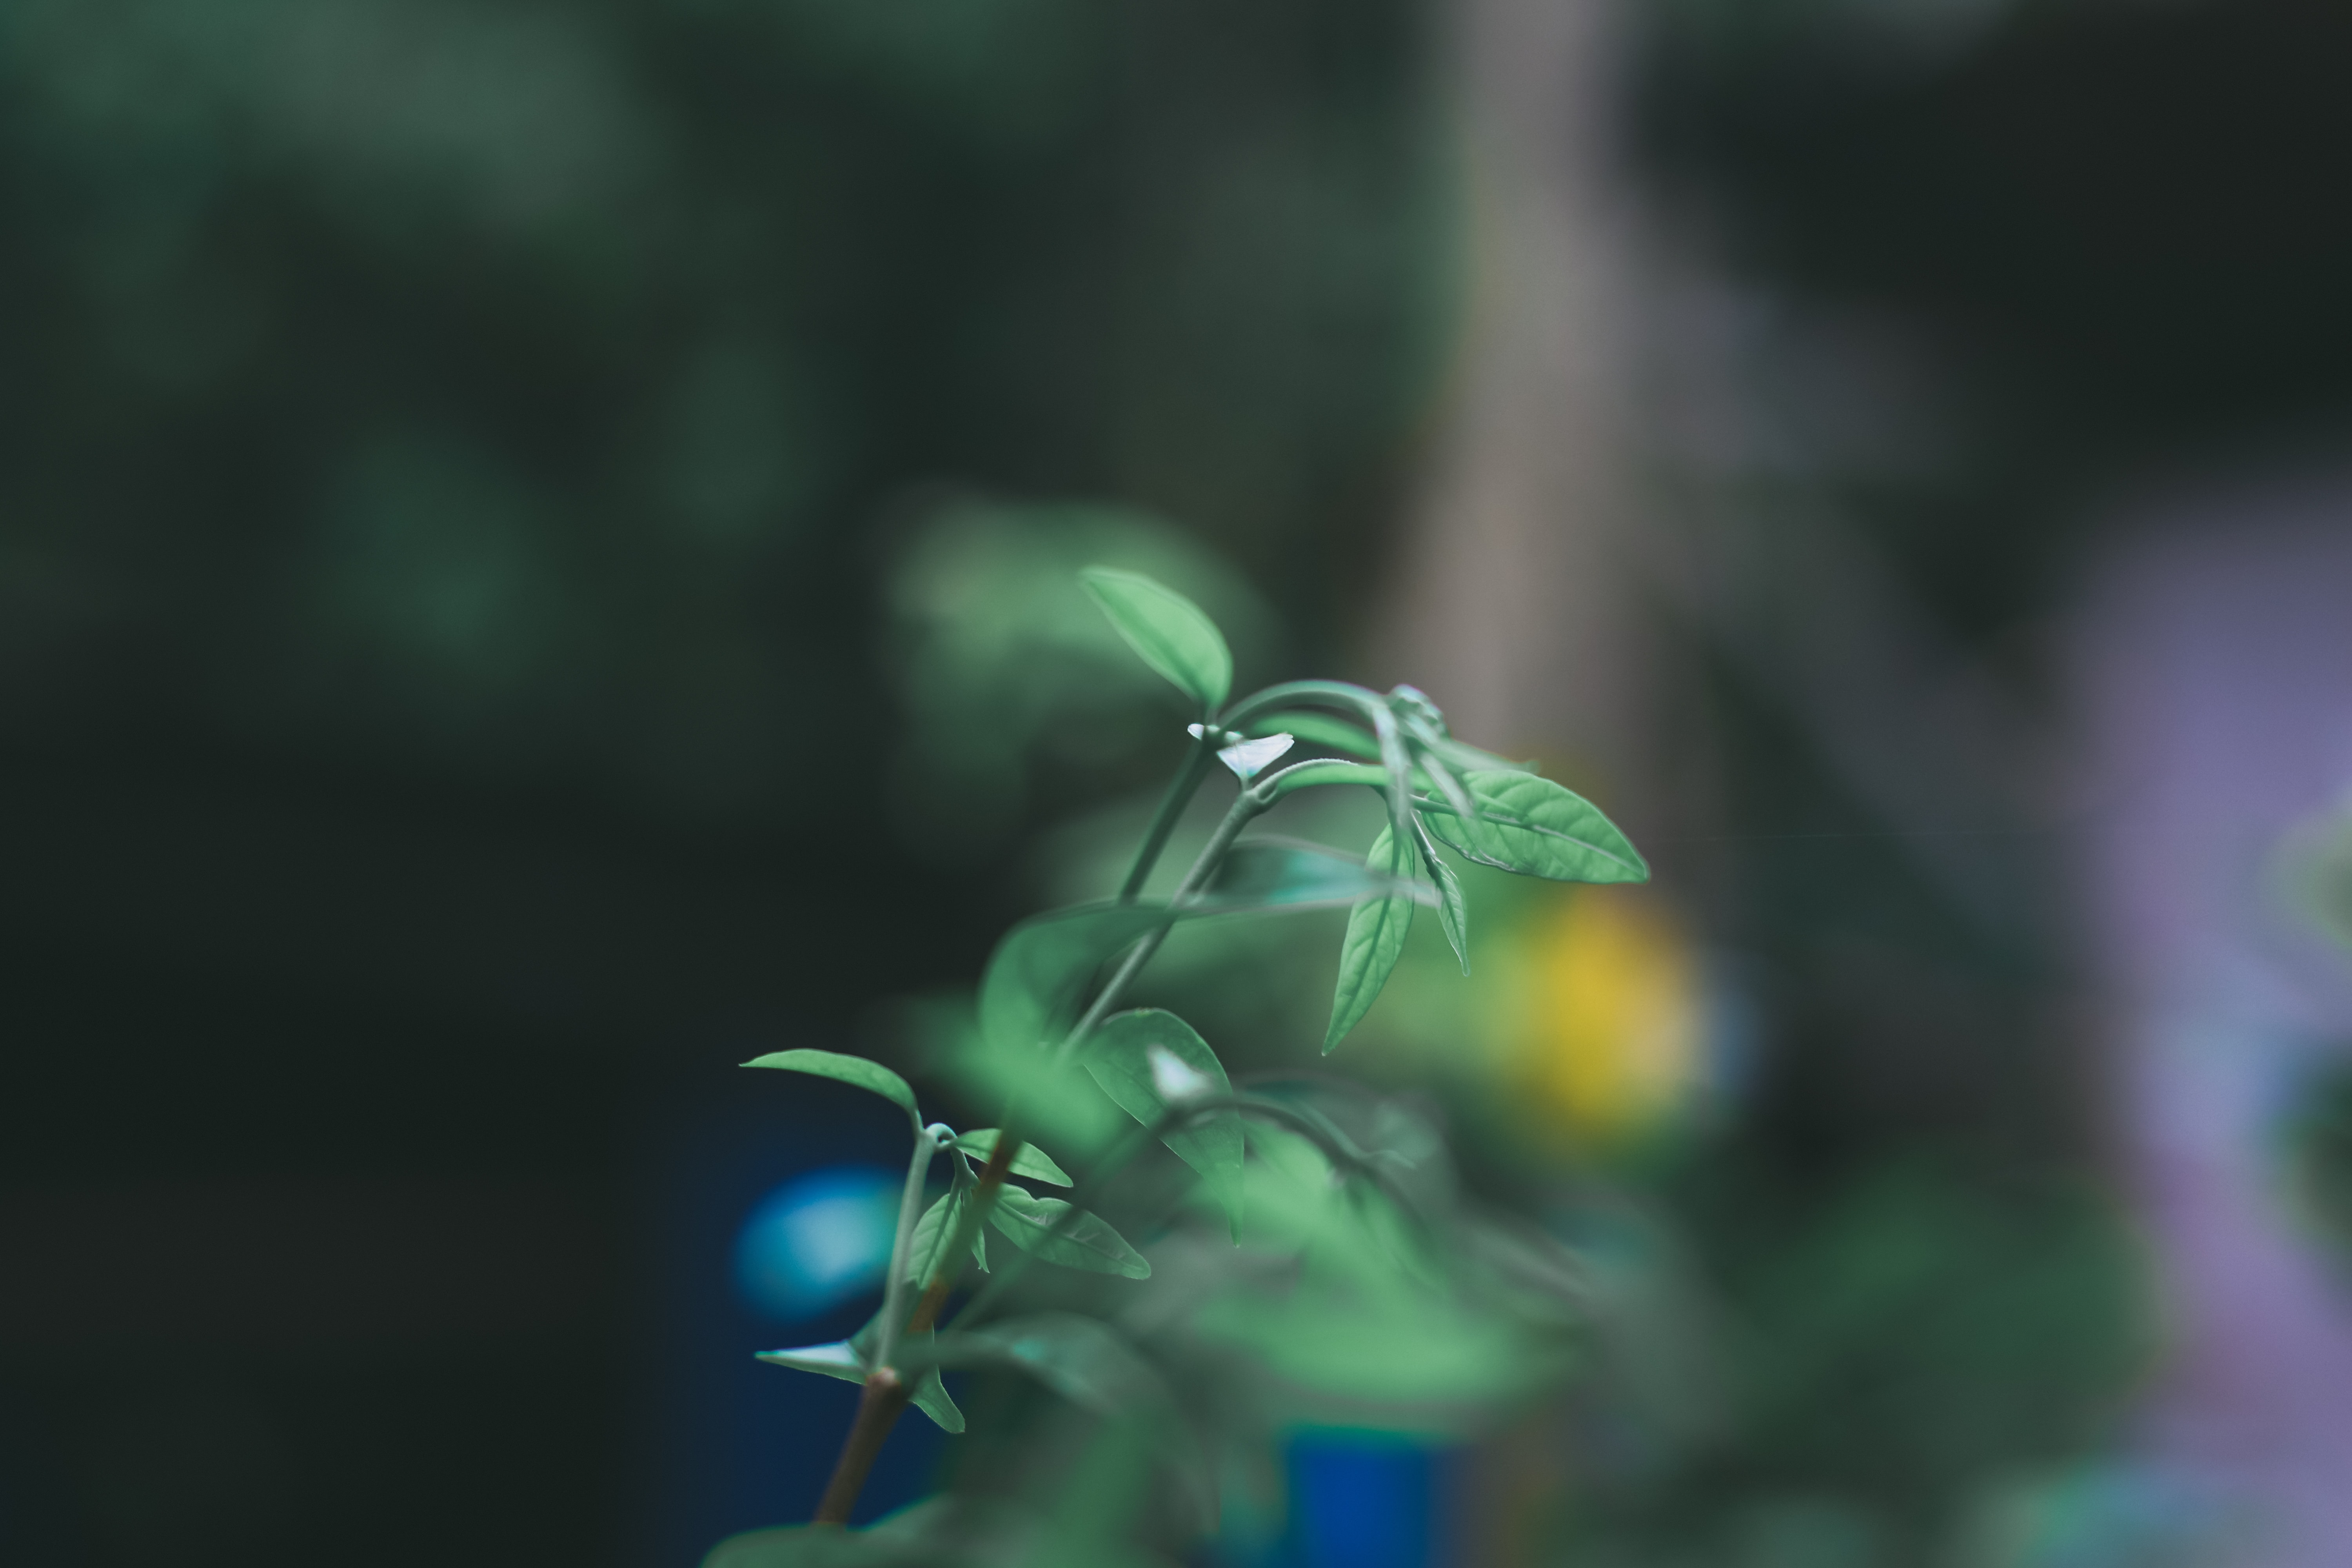 closeup photo of green leafed plant